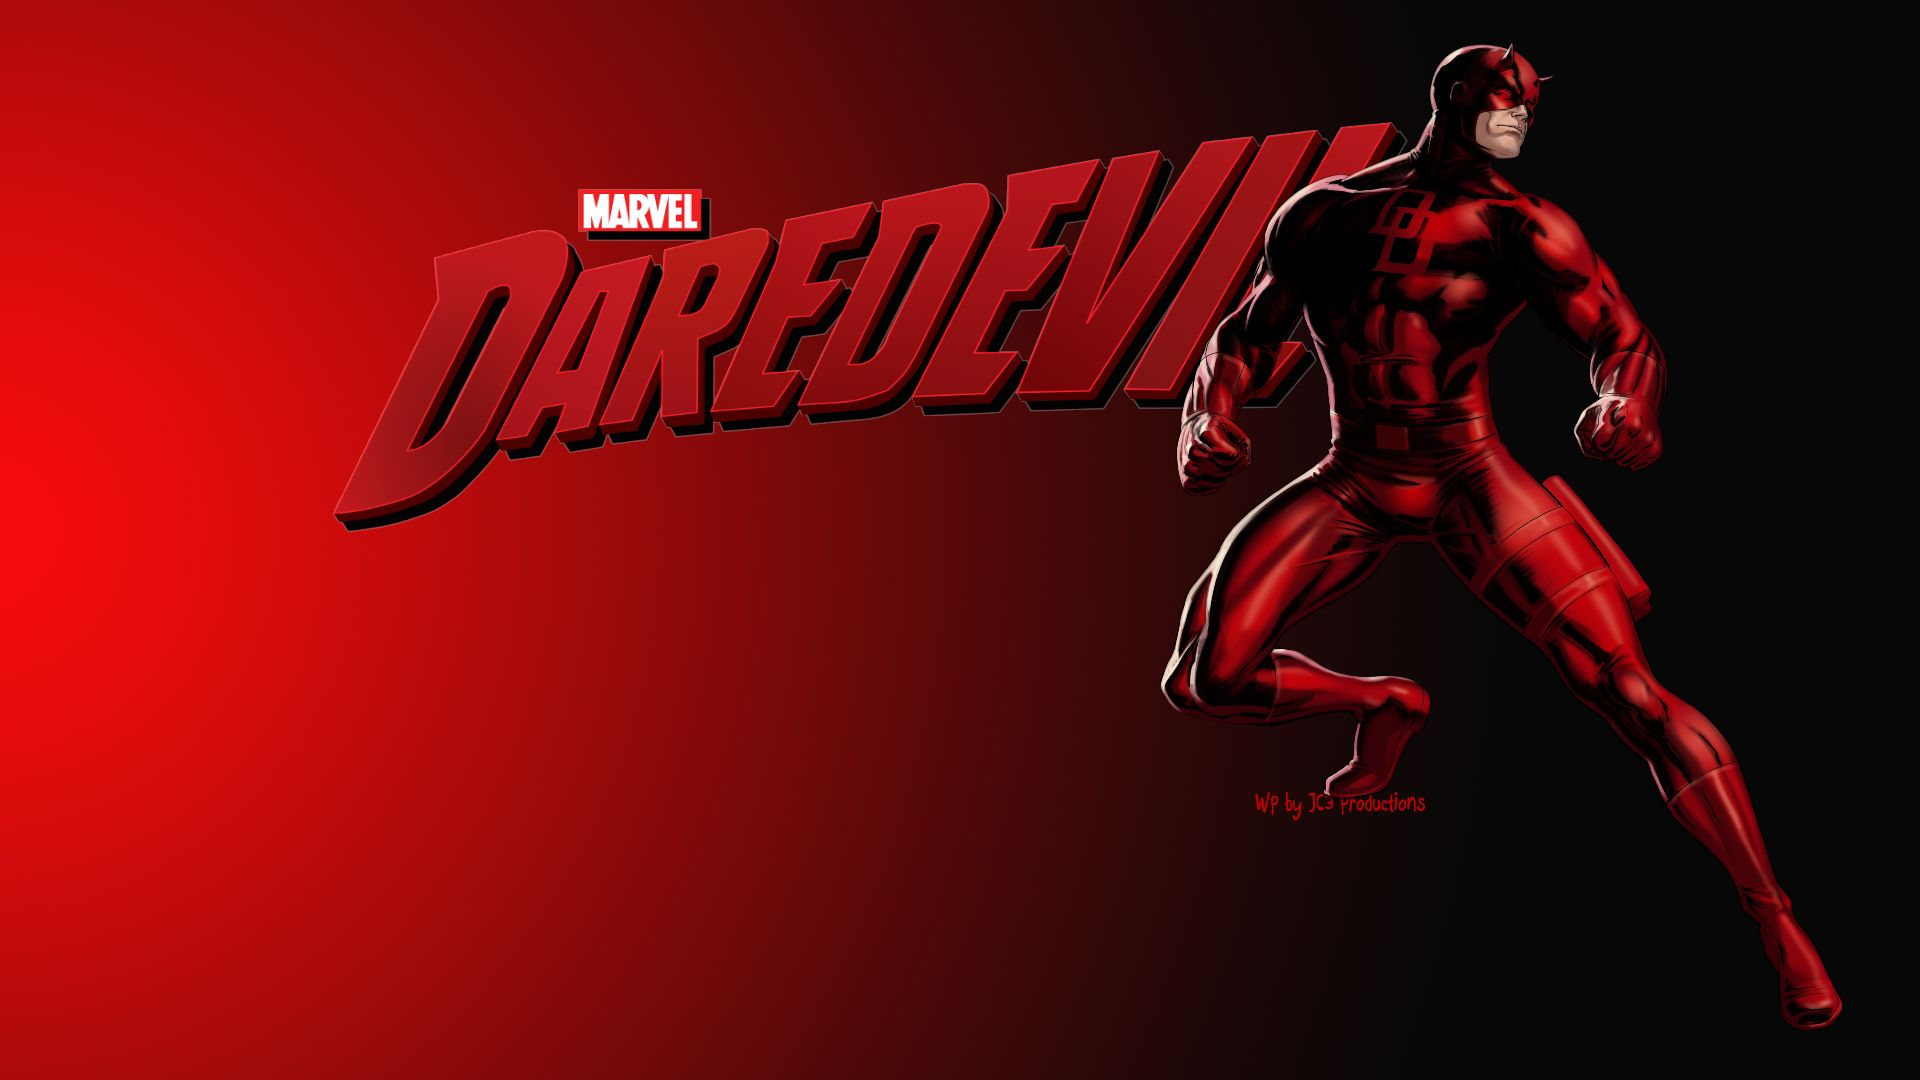 Daredevil Images 2 HD Wallpaper And Background Photos